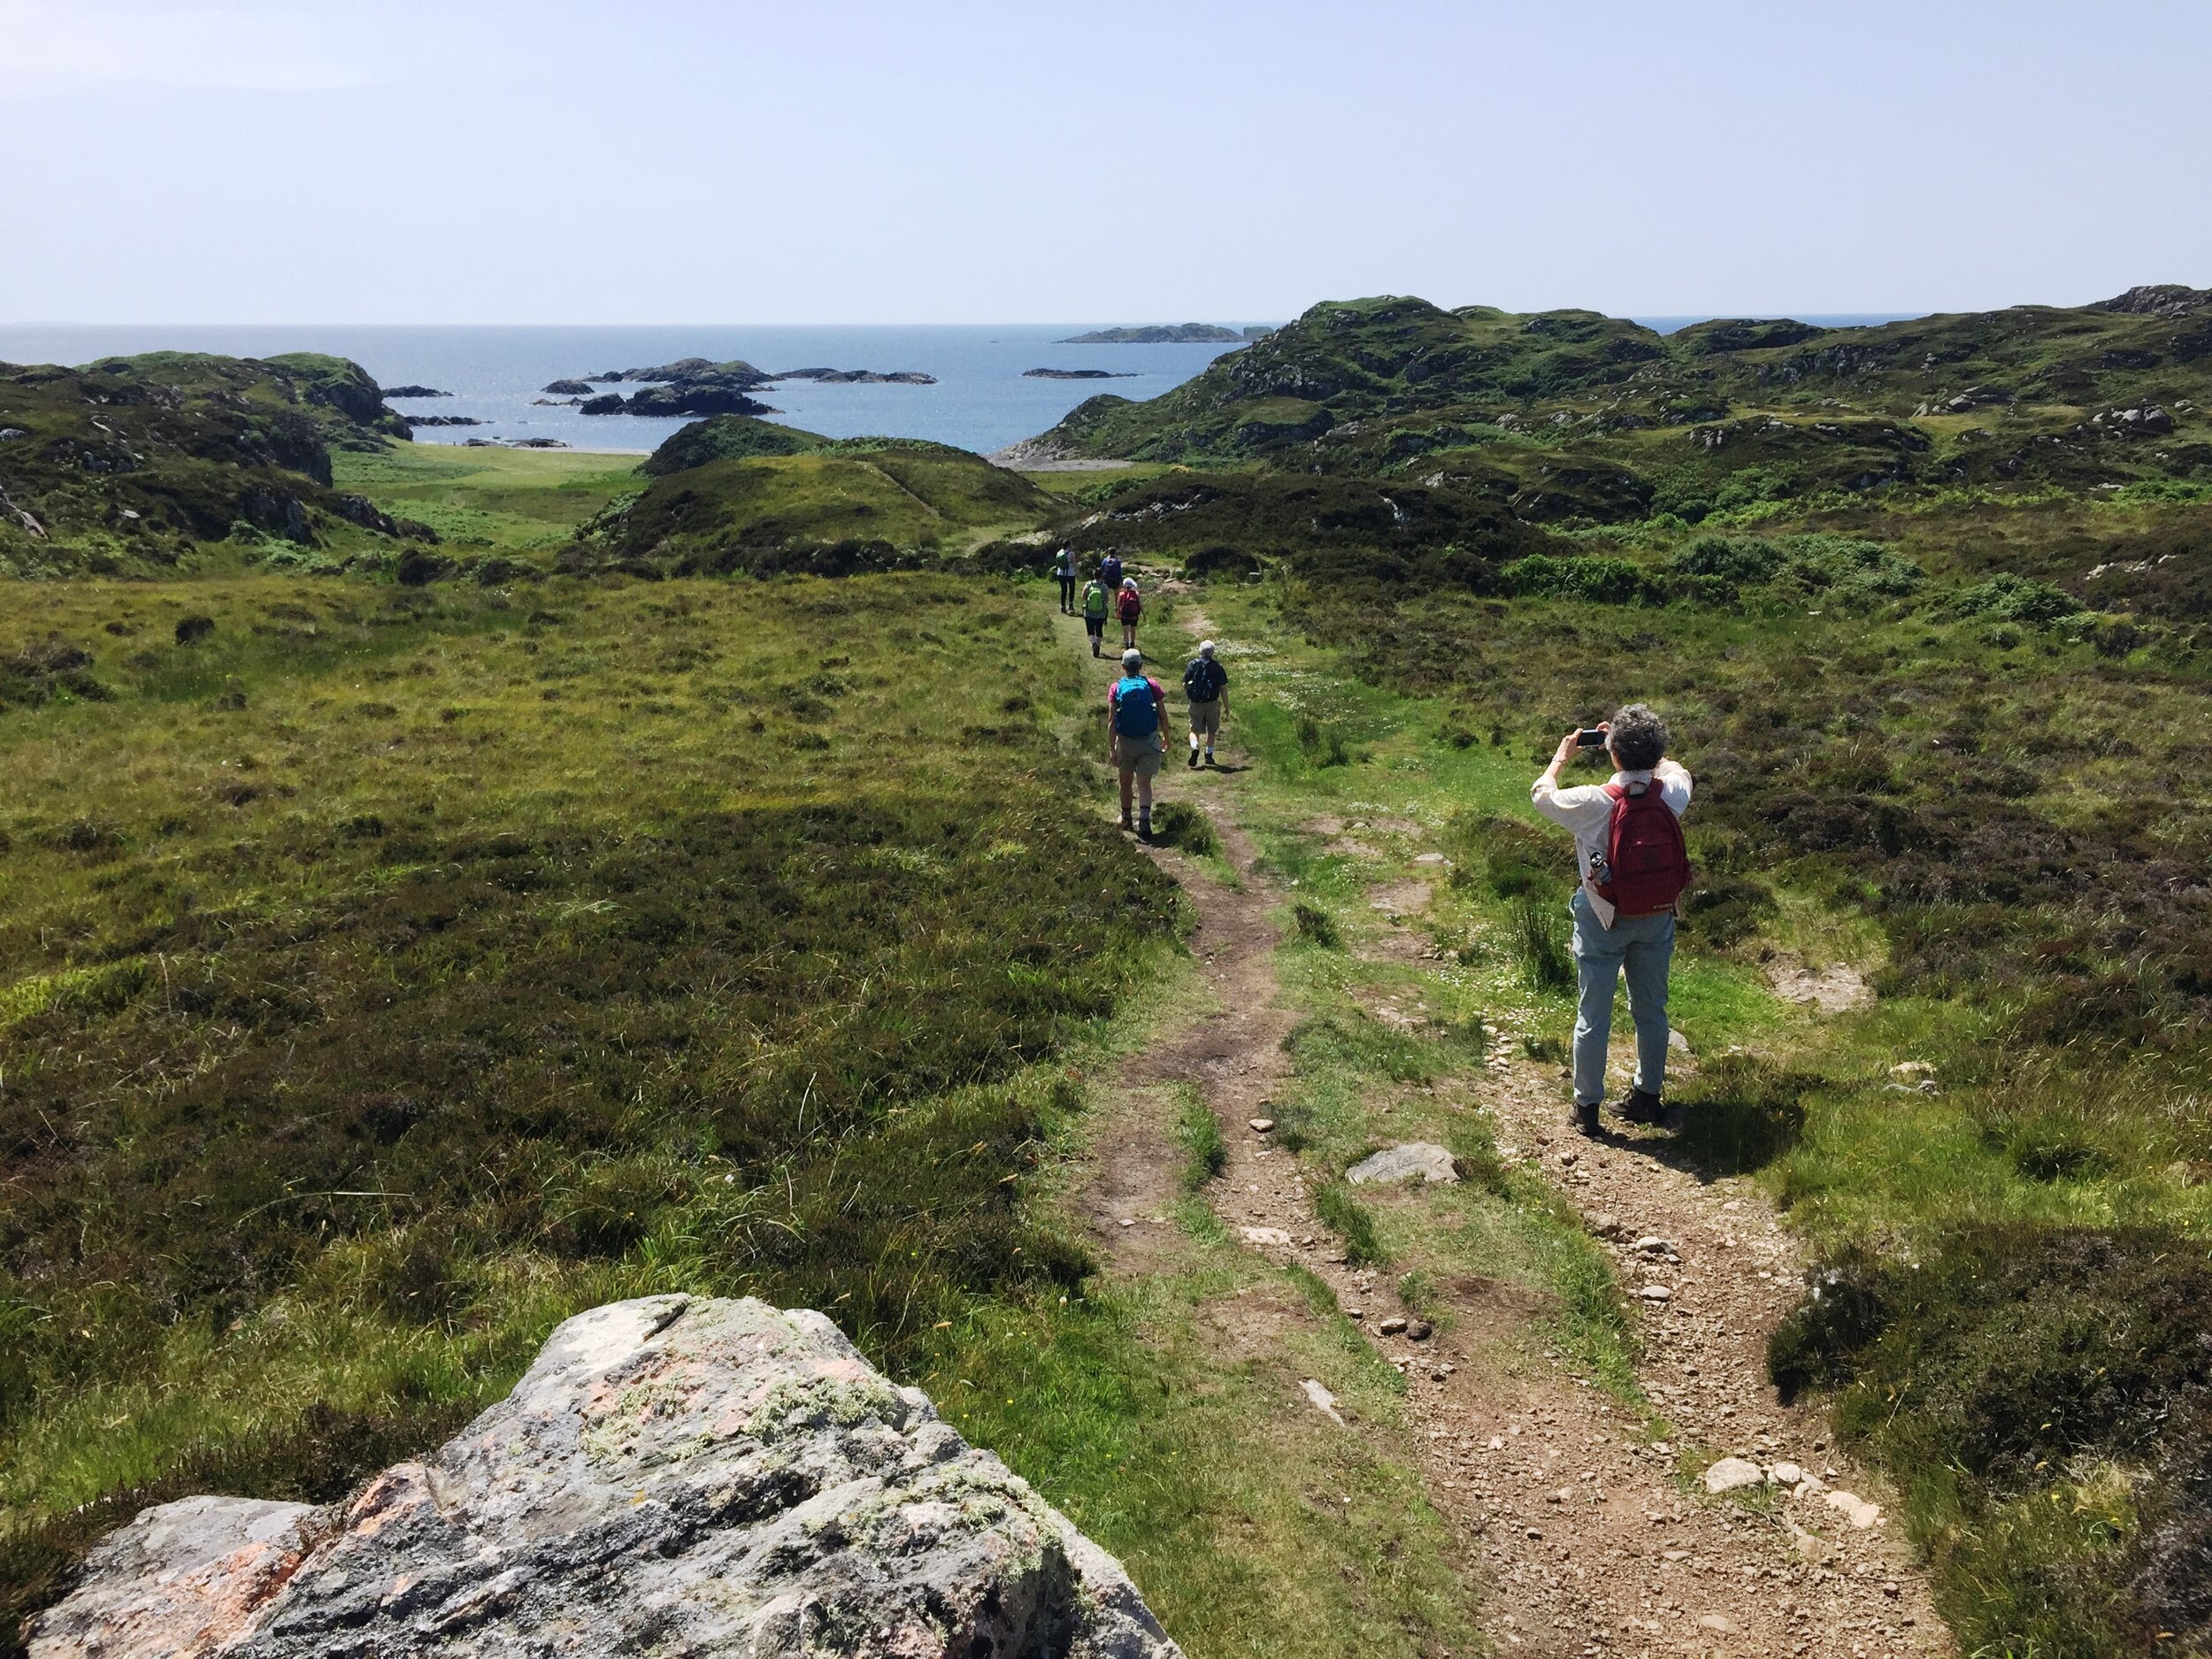 Walking down the hill to St. Columba's Bay